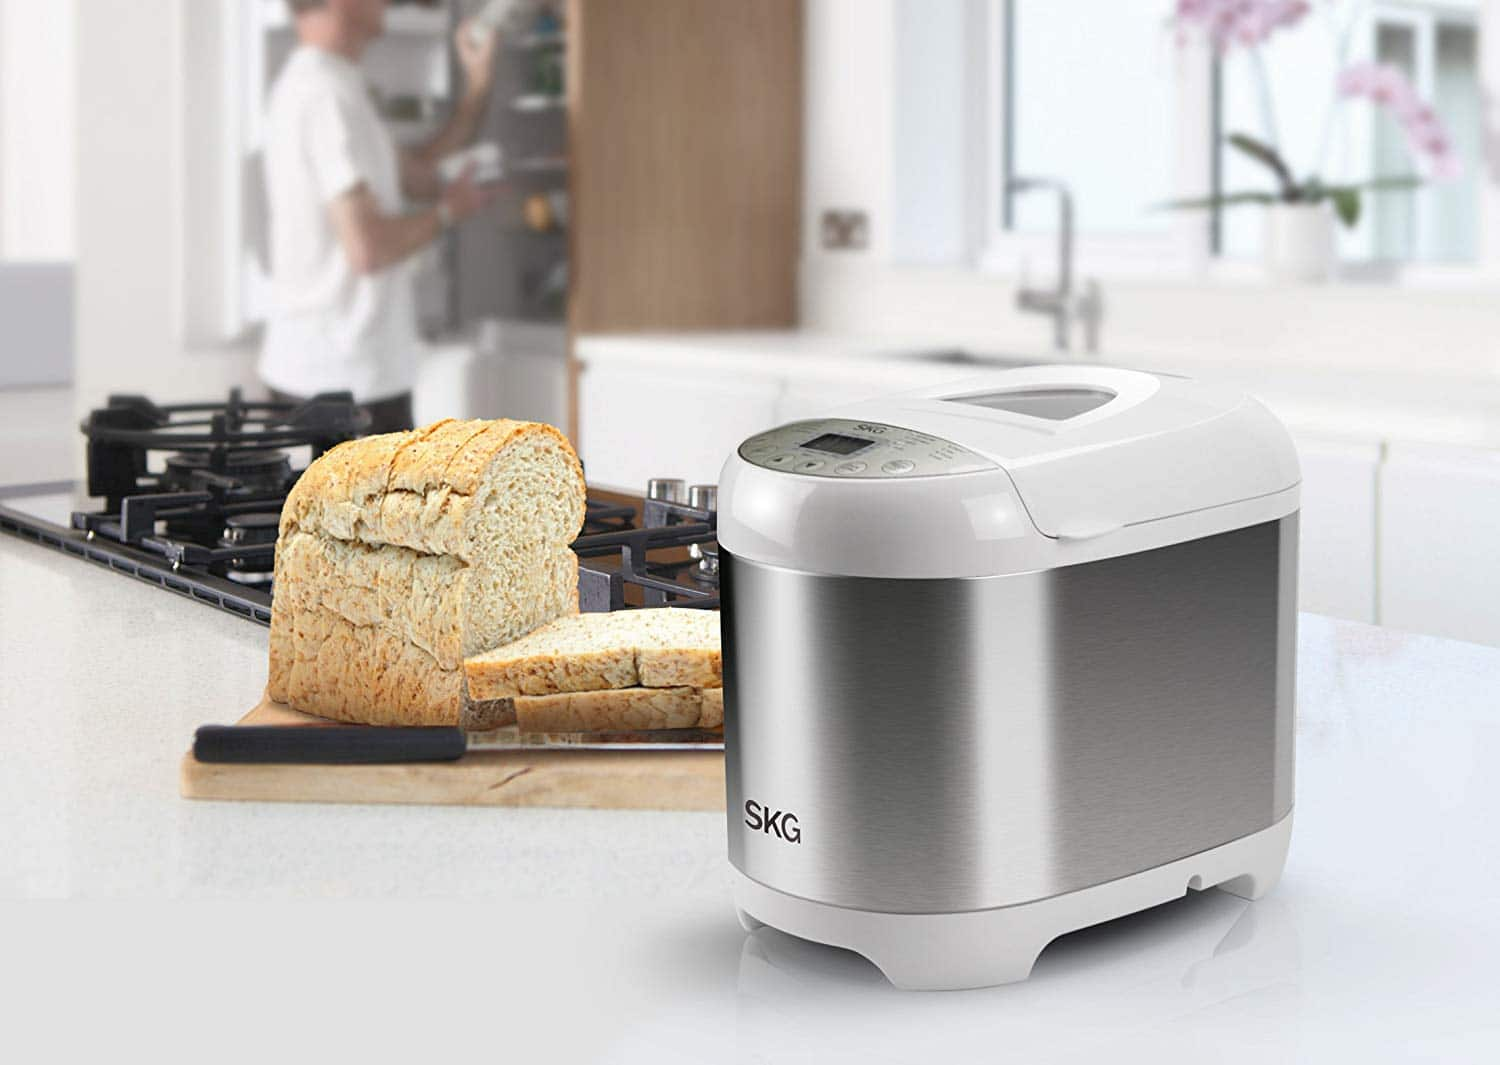 SKG3950 2LB Automatic Programmable Bread Maker for $60 @ Amazon (normally $90) $59.98